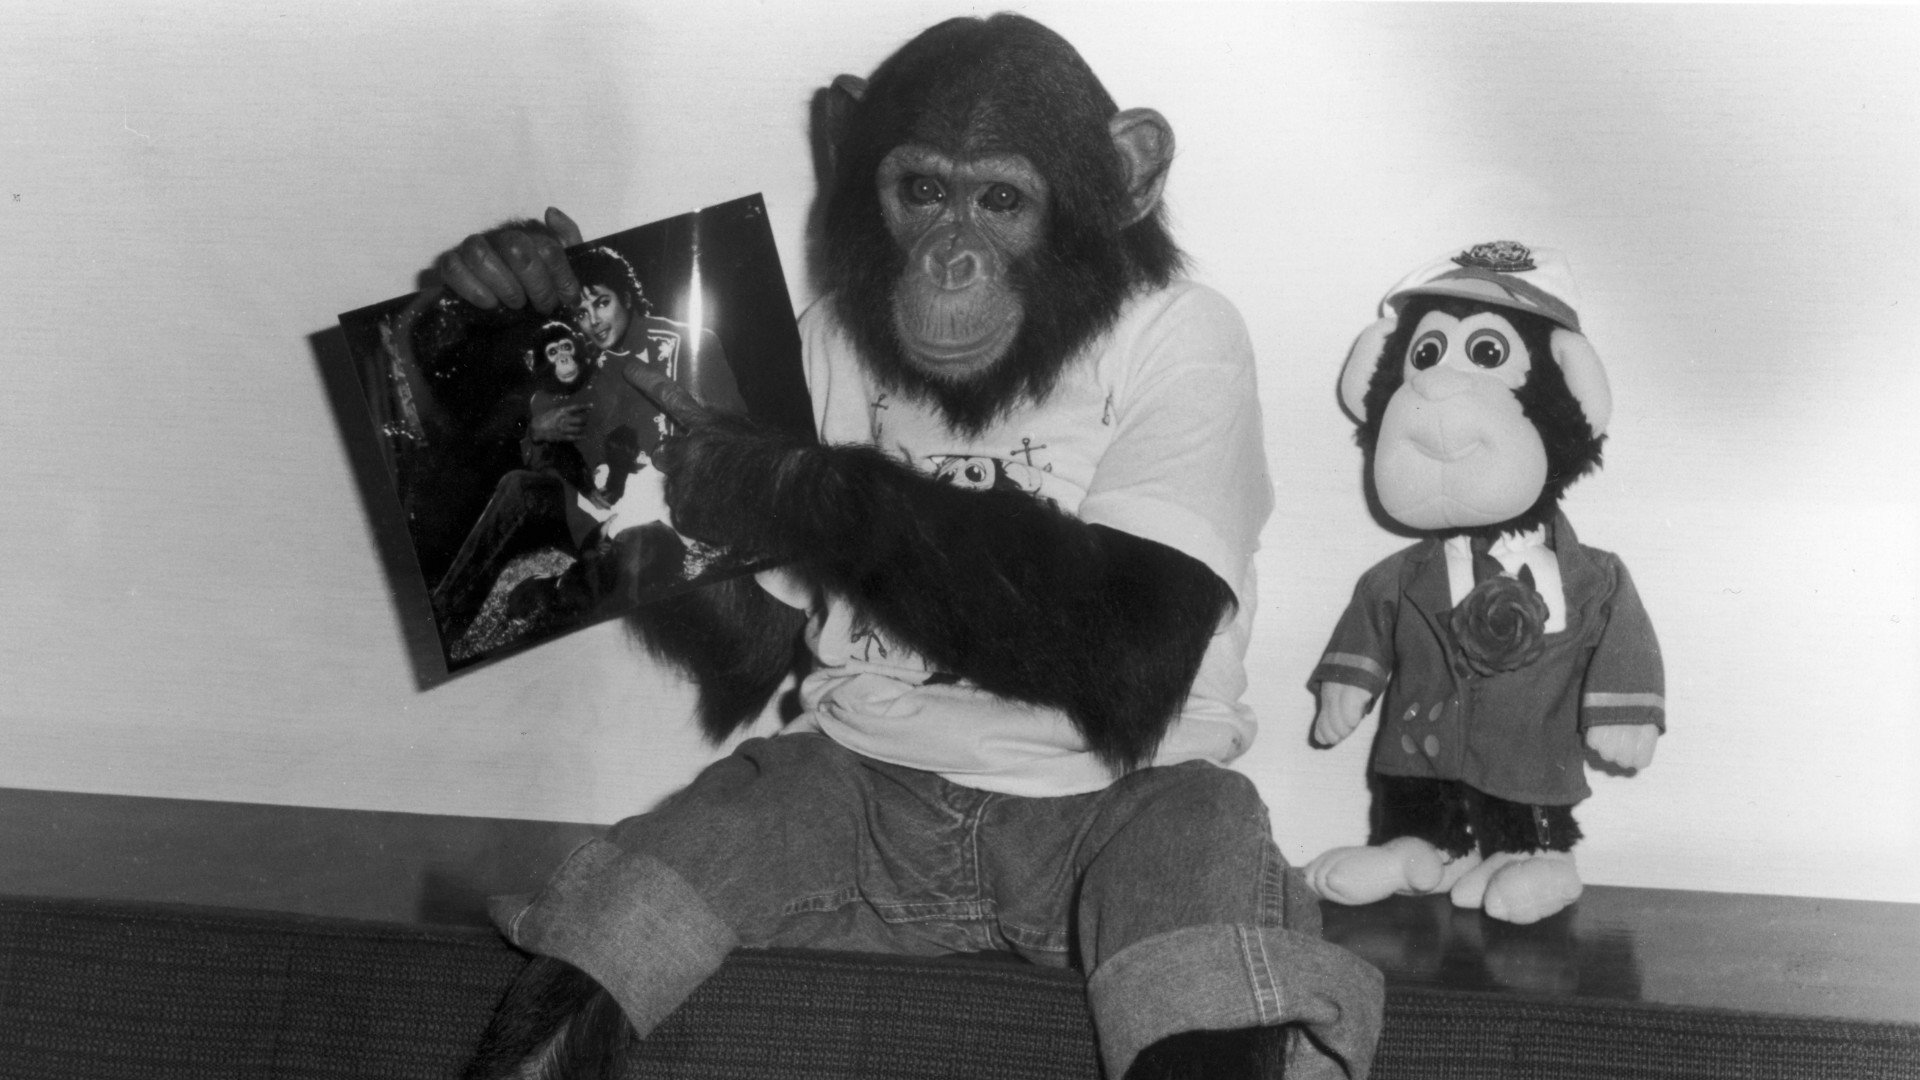 Michael Jackson's pet chimp Bubbles.